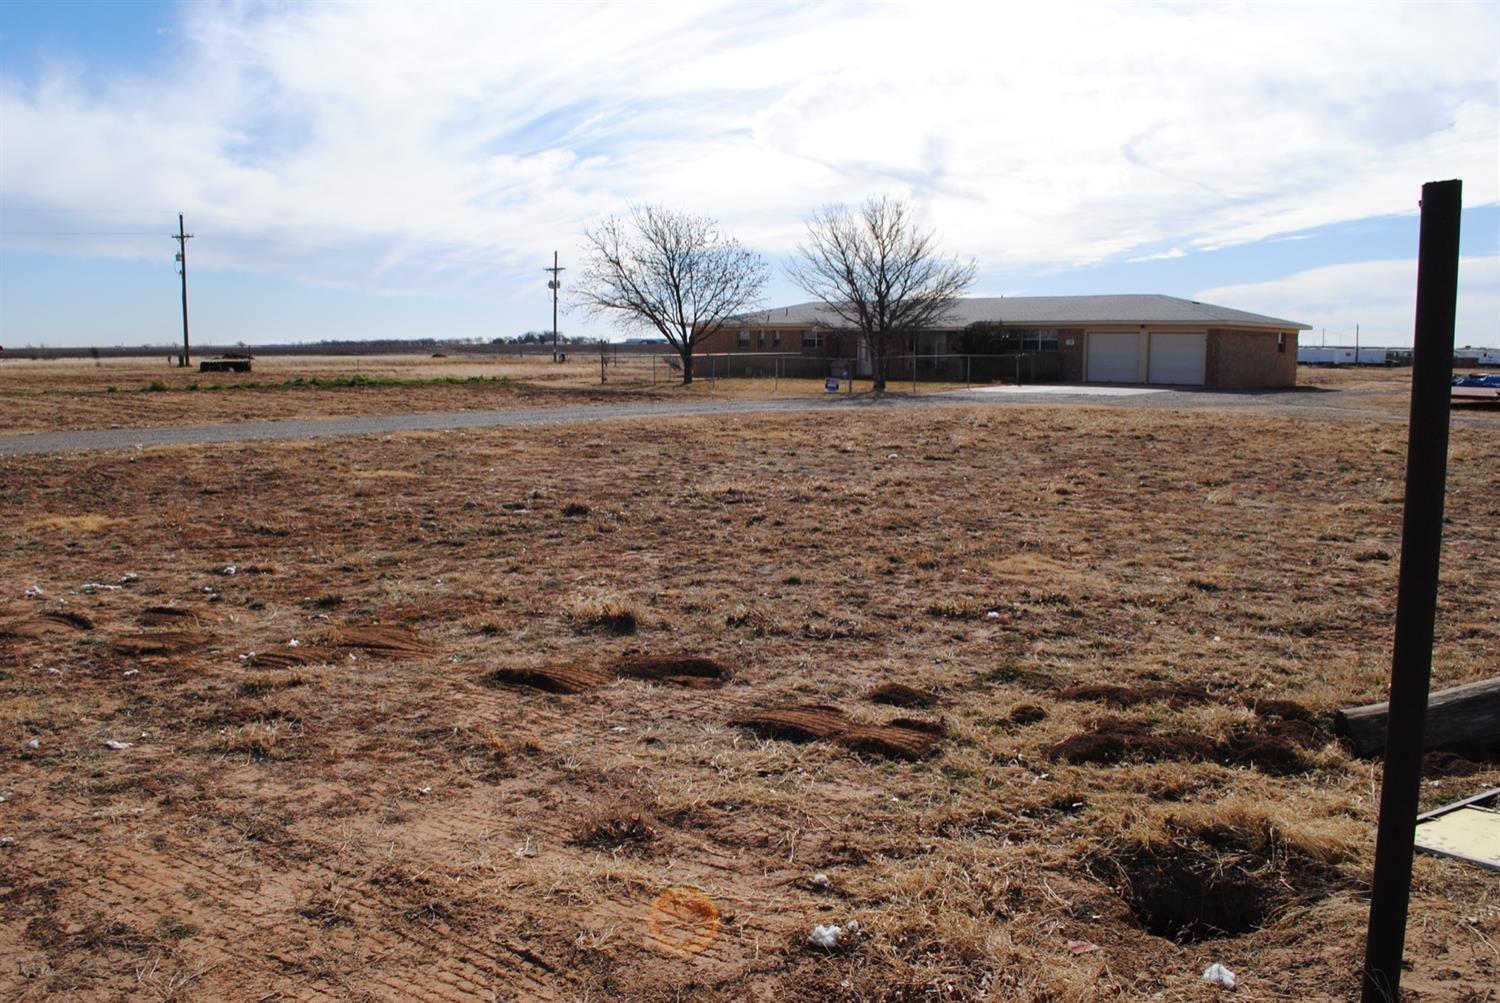 406 E Farm Road 1585, Lubbock, Texas